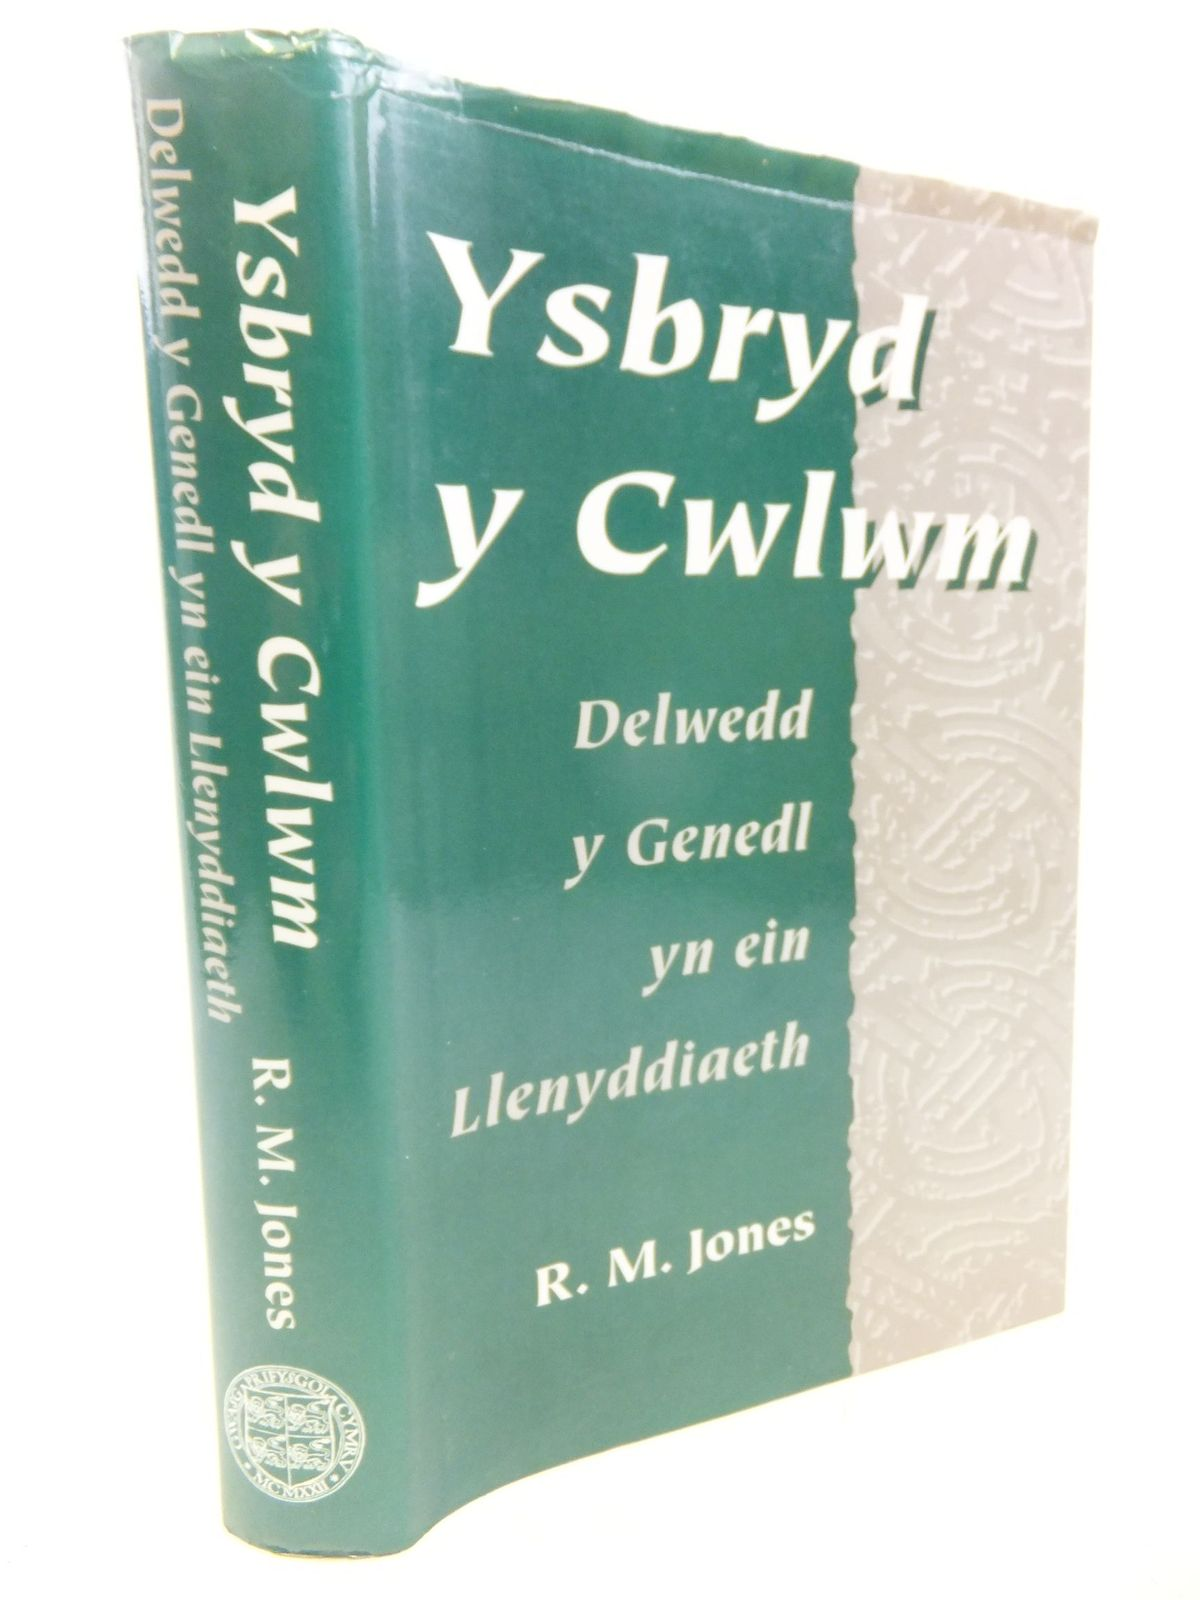 Photo of YSBRYD Y CWLWM: DELWEDD Y GENEDL YN EIN LLENYDDIAETH written by Jones, R.M. published by Gwasg Prifysgol Cymru (STOCK CODE: 1712817)  for sale by Stella & Rose's Books